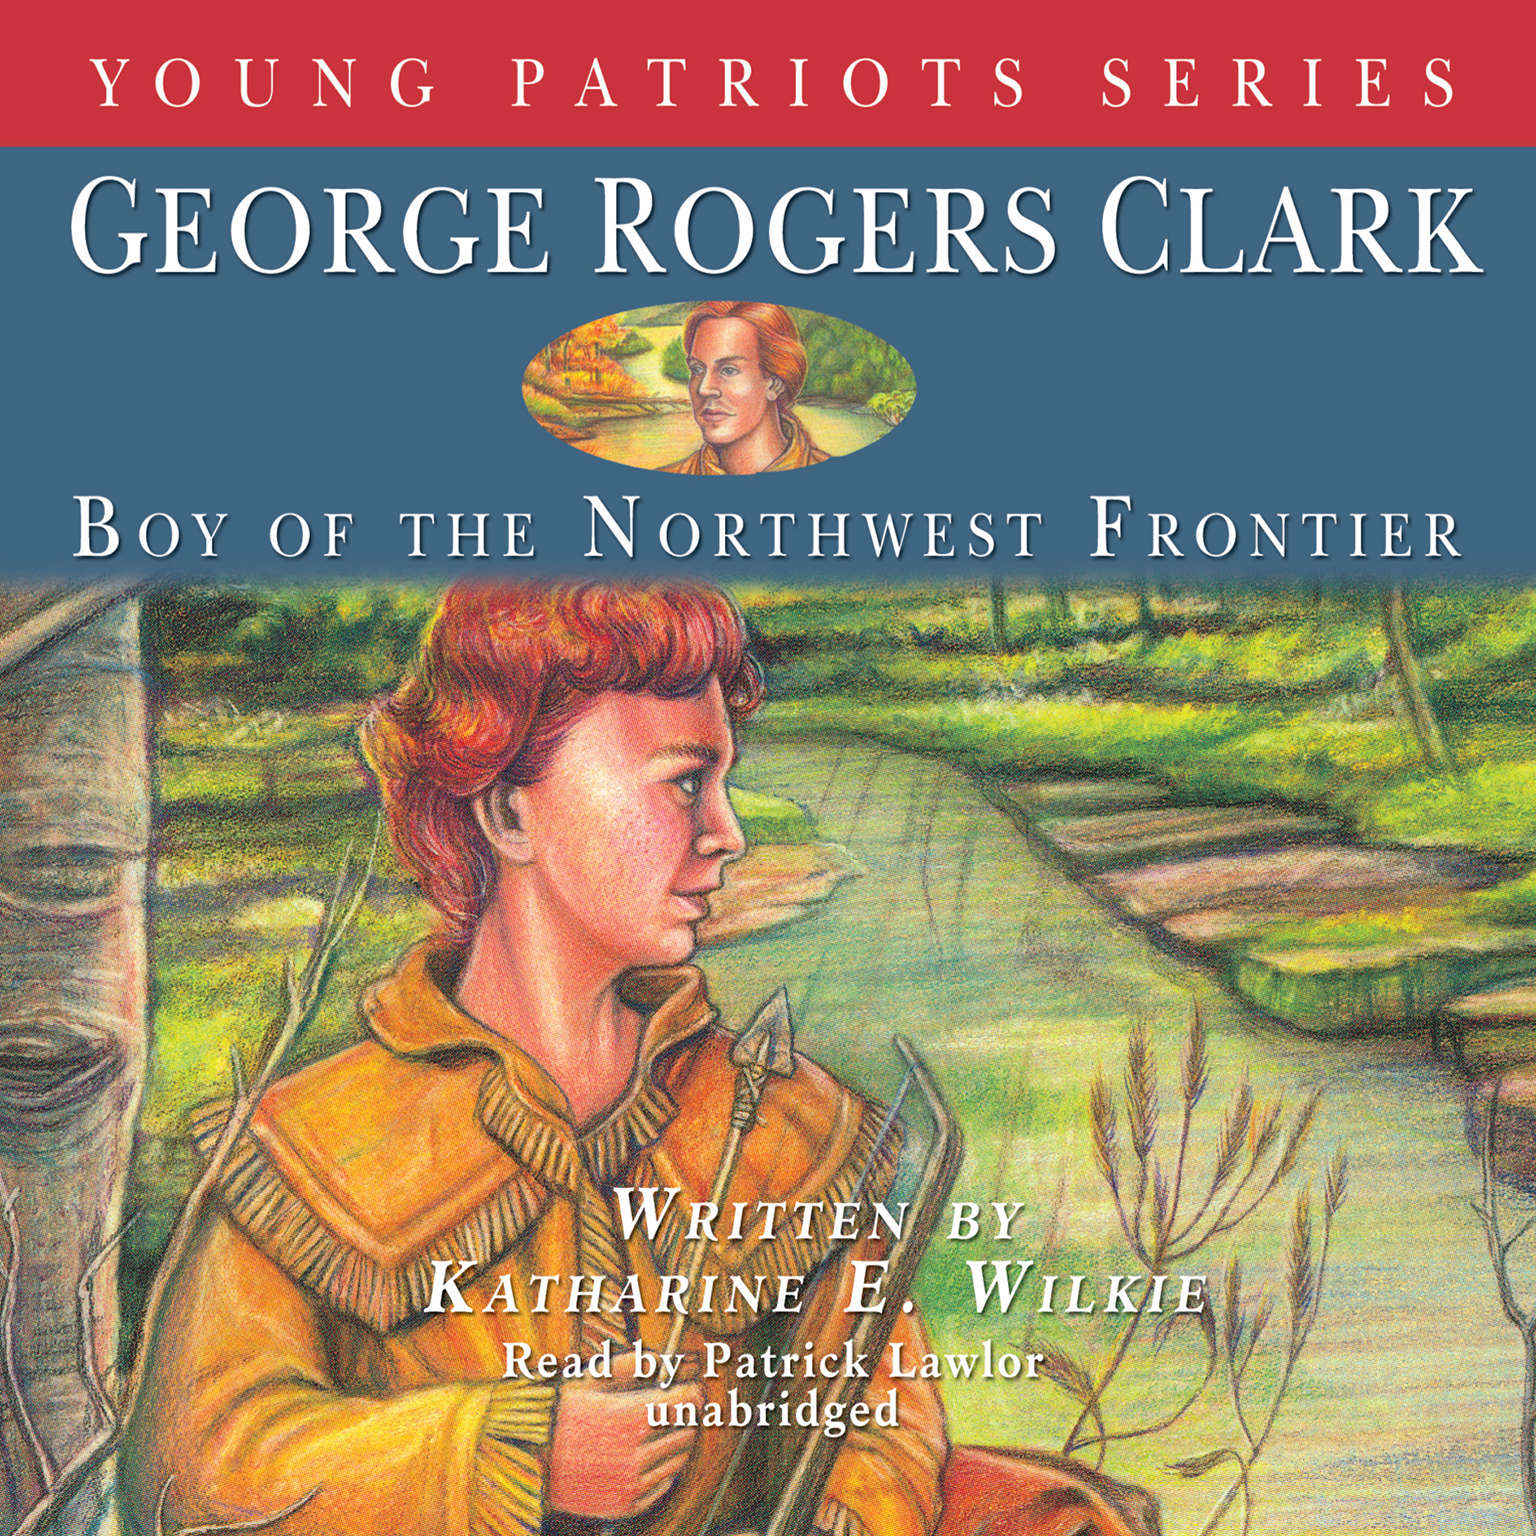 Printable George Rogers Clark: Boy of the Northwest Frontier Audiobook Cover Art